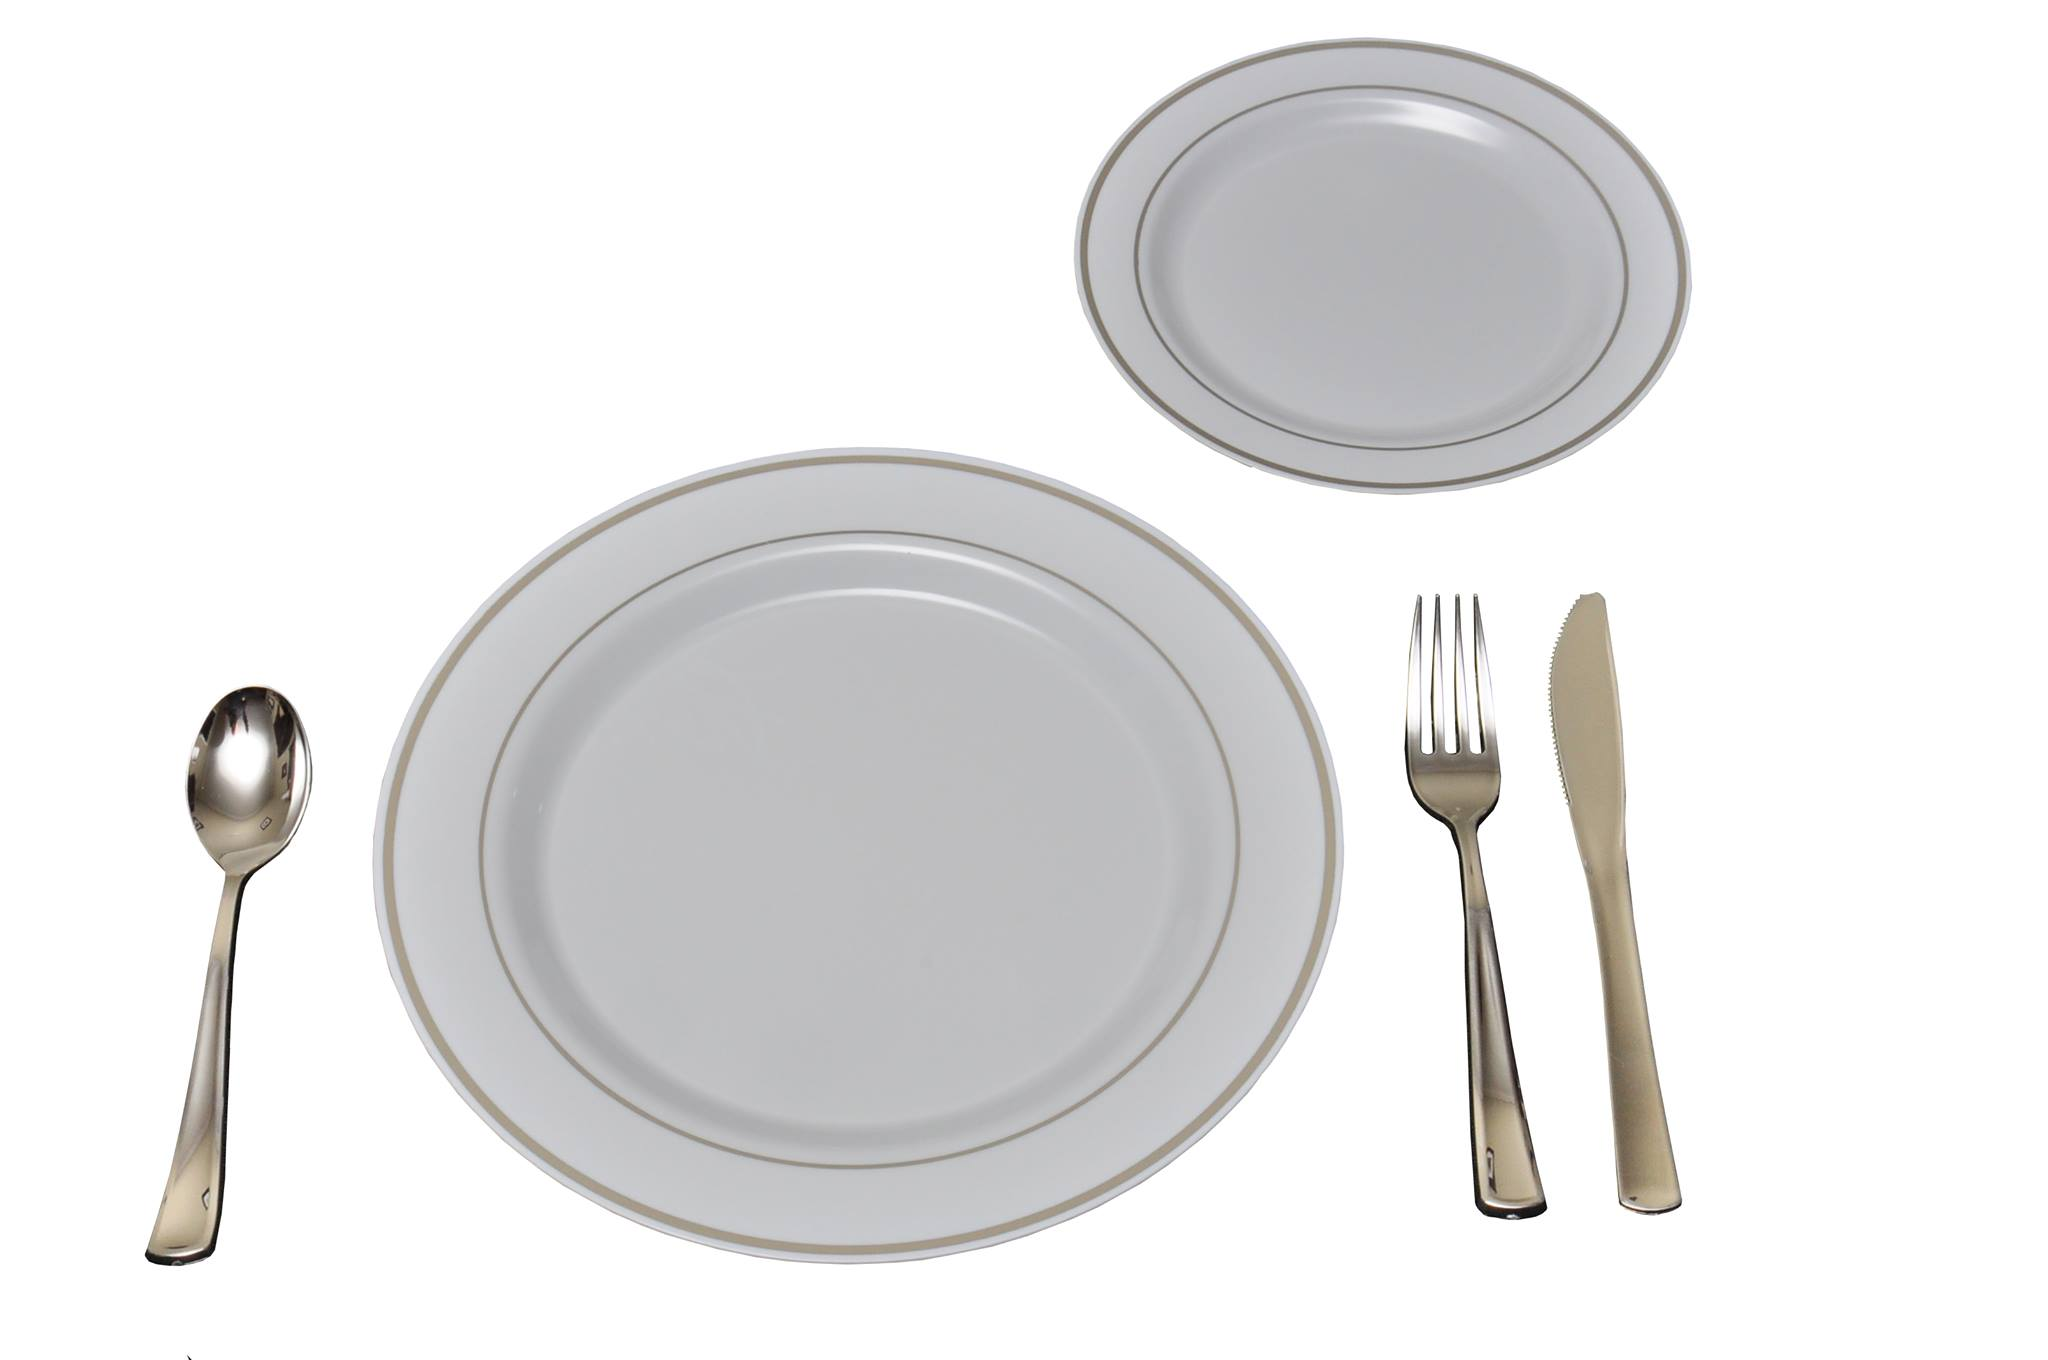 25 Heavyweight Elegant Plastic Disposable Place Settings 25 Dinner Plates 25 Salad or Dessert Plates \u0026 25 Polished Silver Plastic Forks Knives \u0026 Spoons ...  sc 1 st  Precisely Plastic & 25 Heavyweight Elegant Plastic Disposable Place Settings: 25 ...